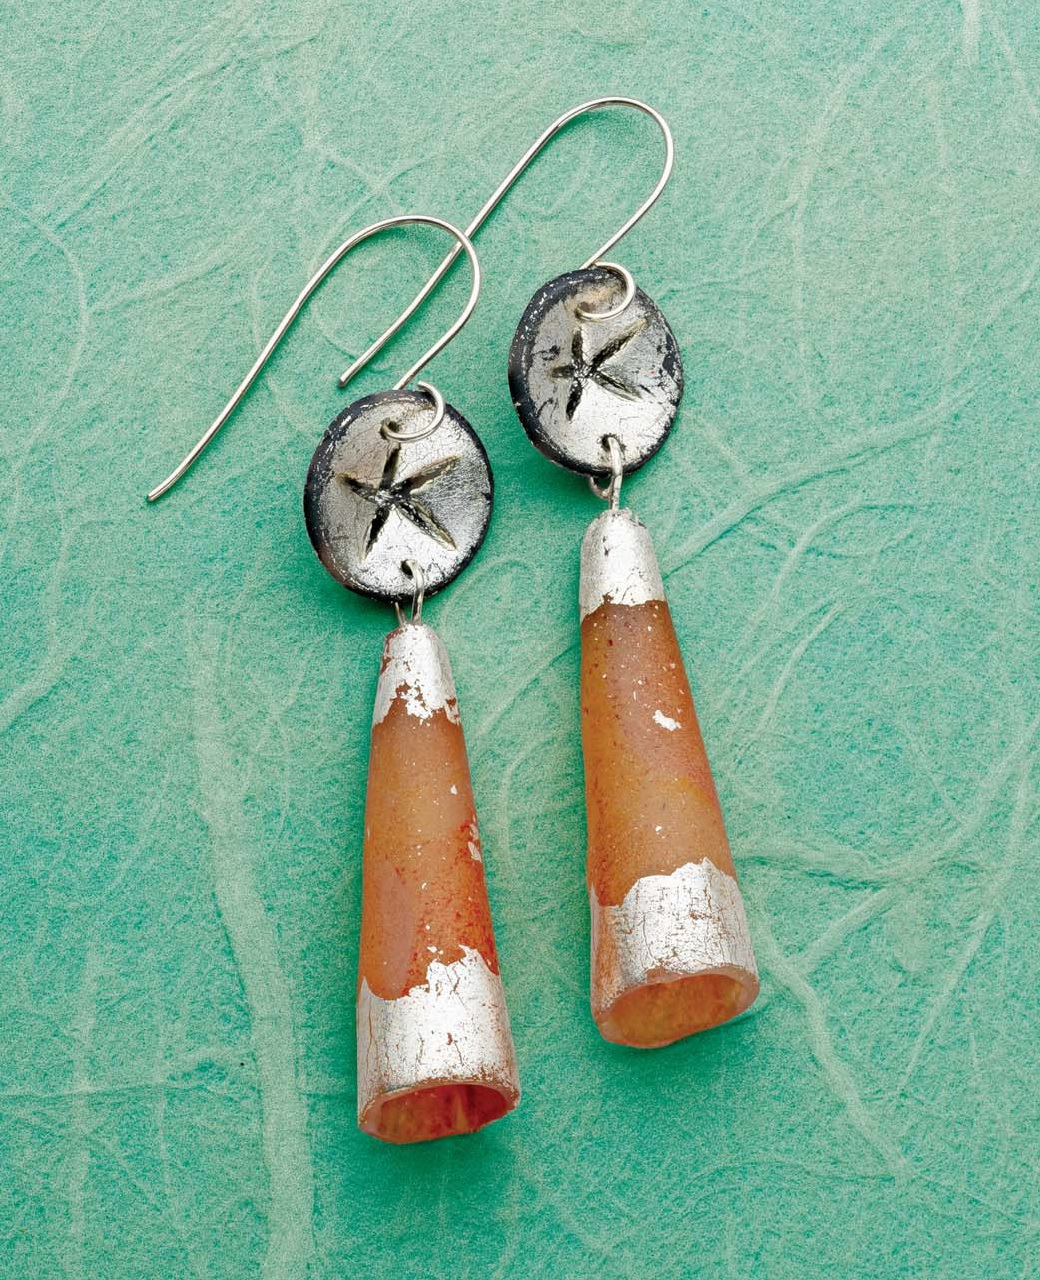 See the tutorial for the Starlight Lantern earrings by Sarah Wilbanks in the May/June issue of Lapidary Journal Jewelry Artist.